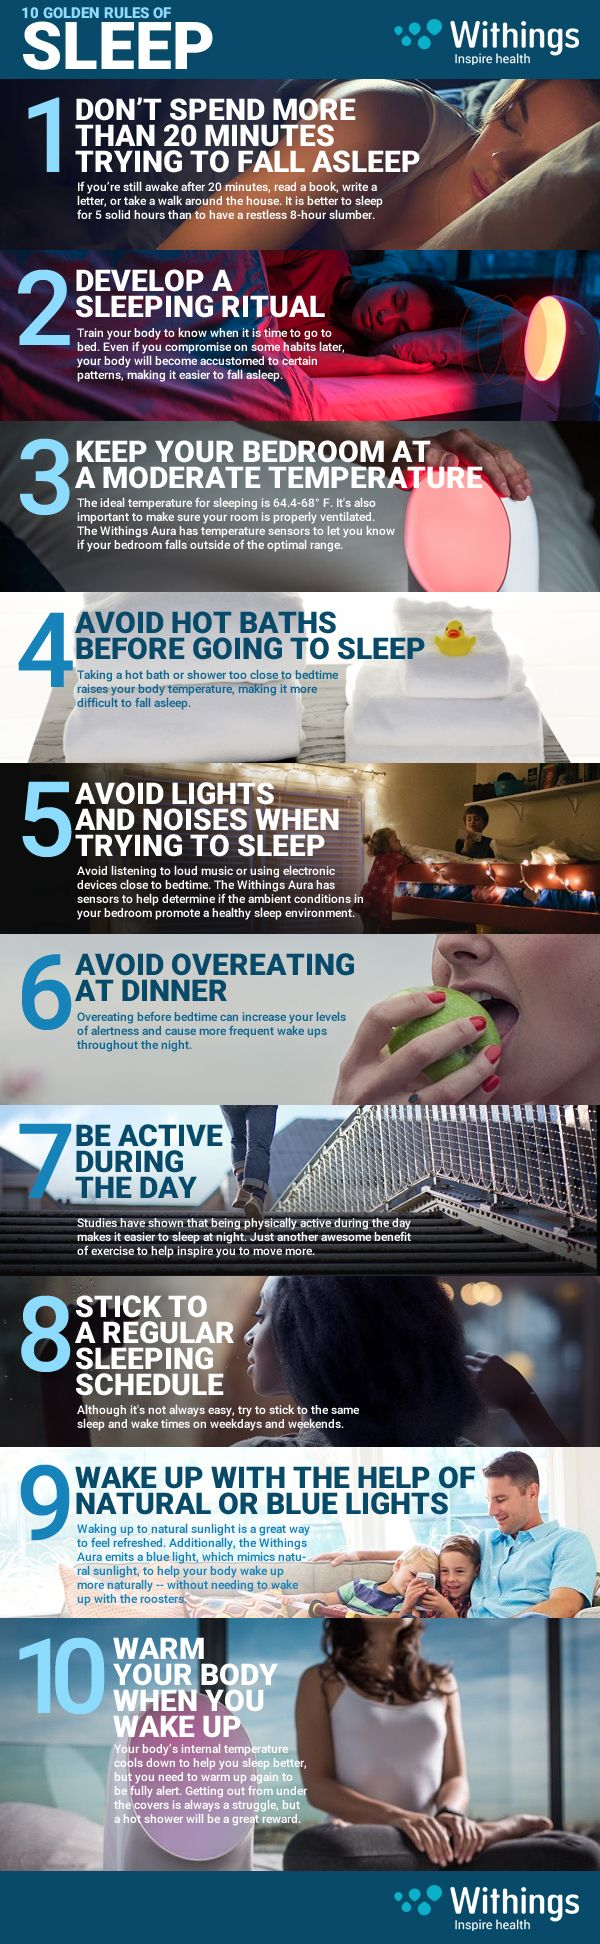 10graphics That Will Help You Fall Asleep In 10 Minutes Tonight